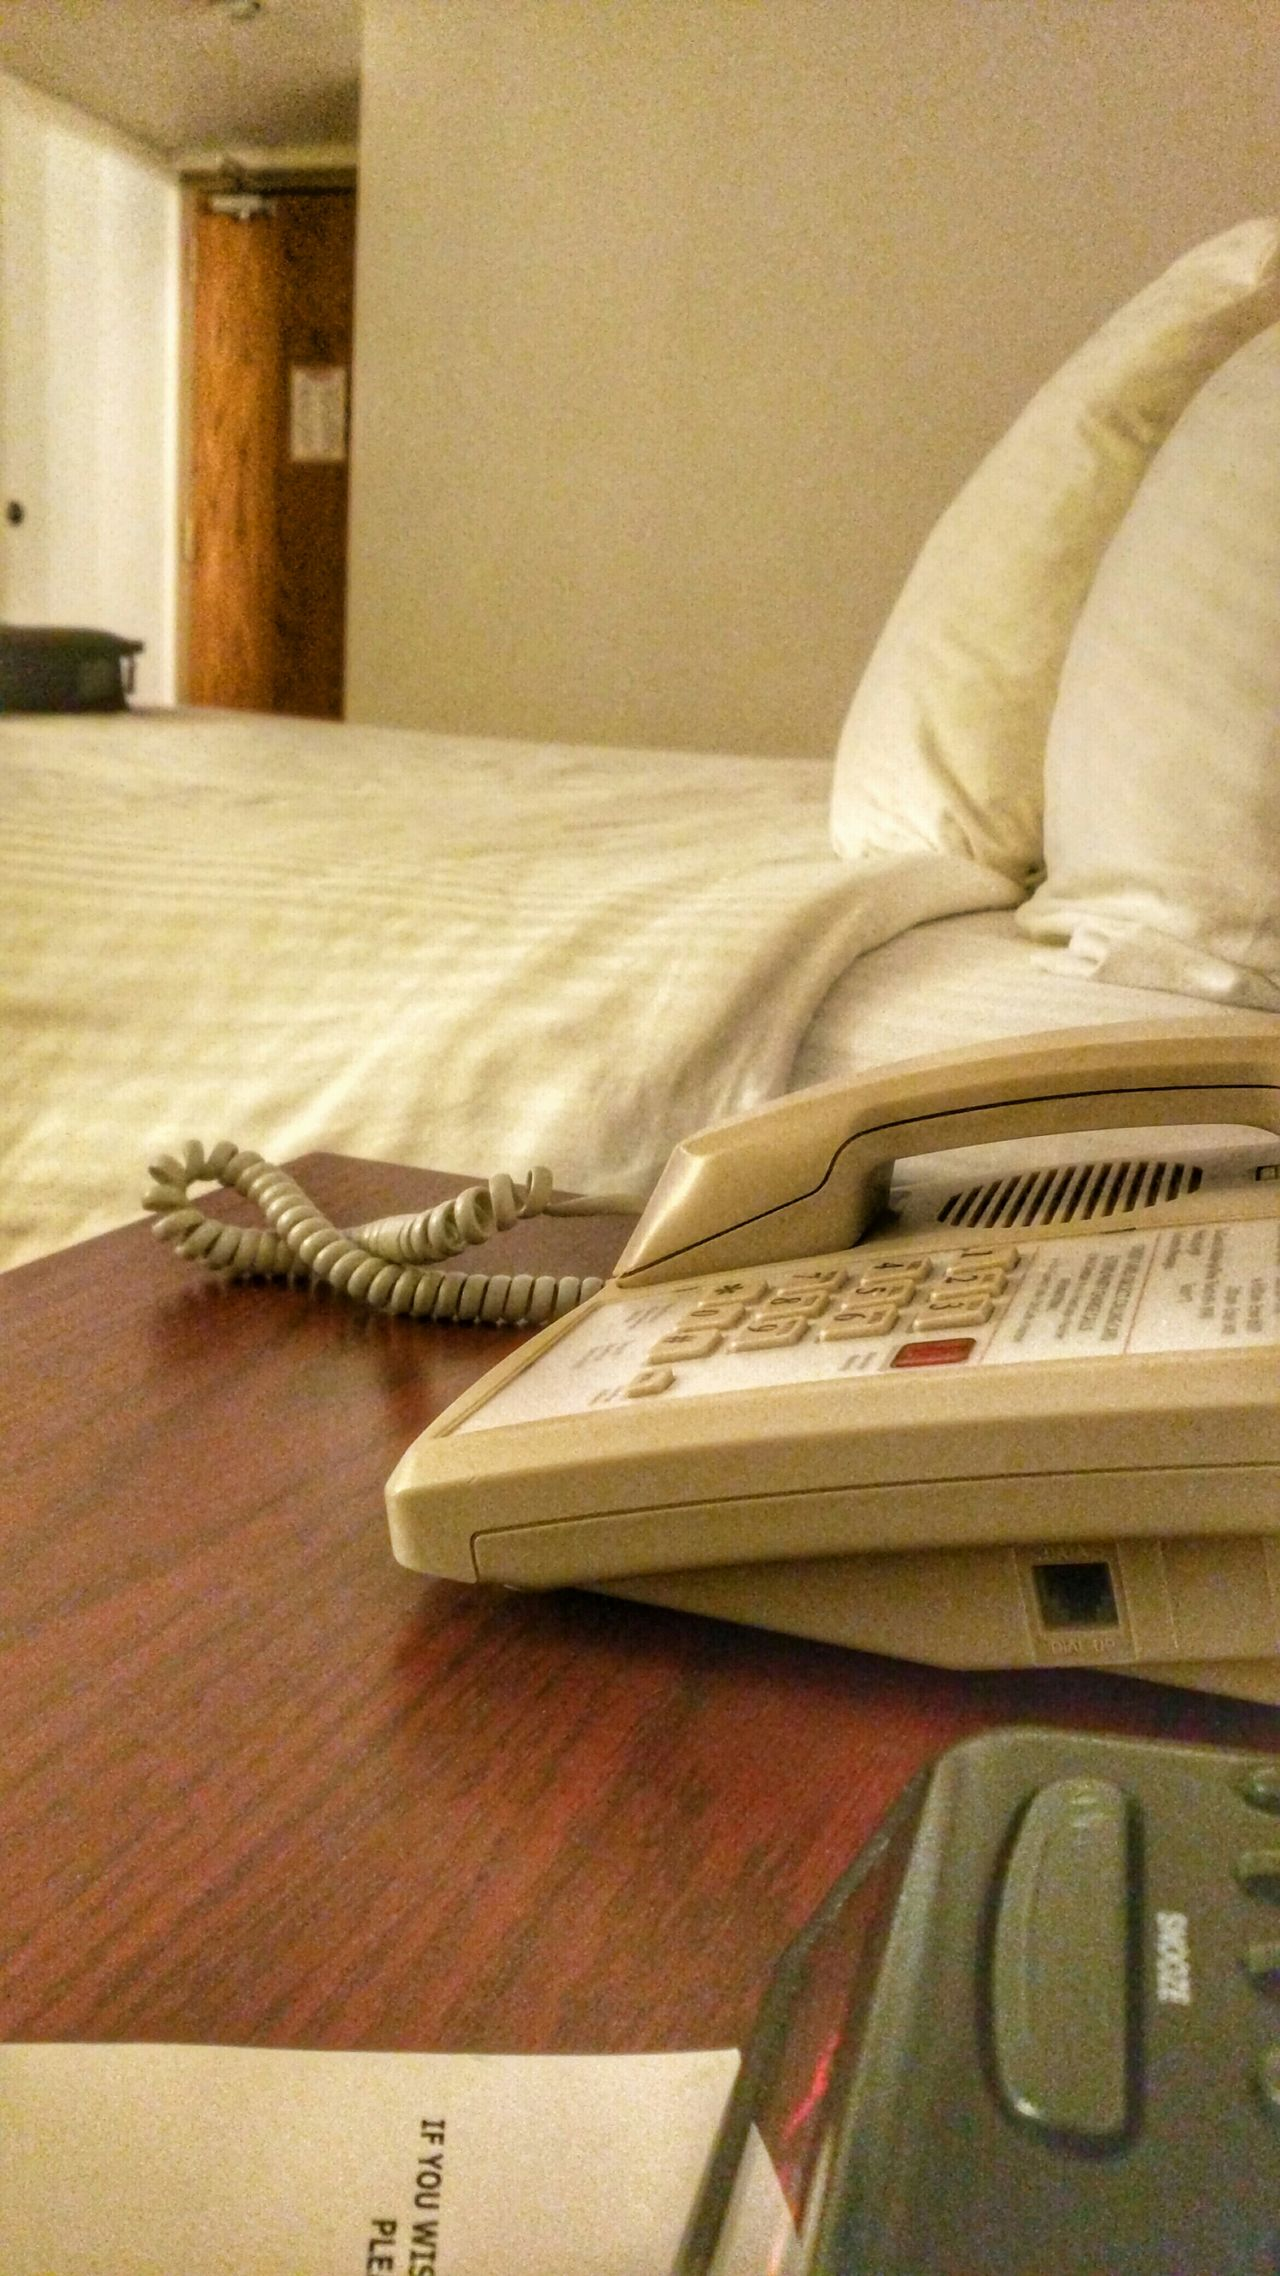 Hotel Phone Bed Time Room Roomview Bedtime Bed